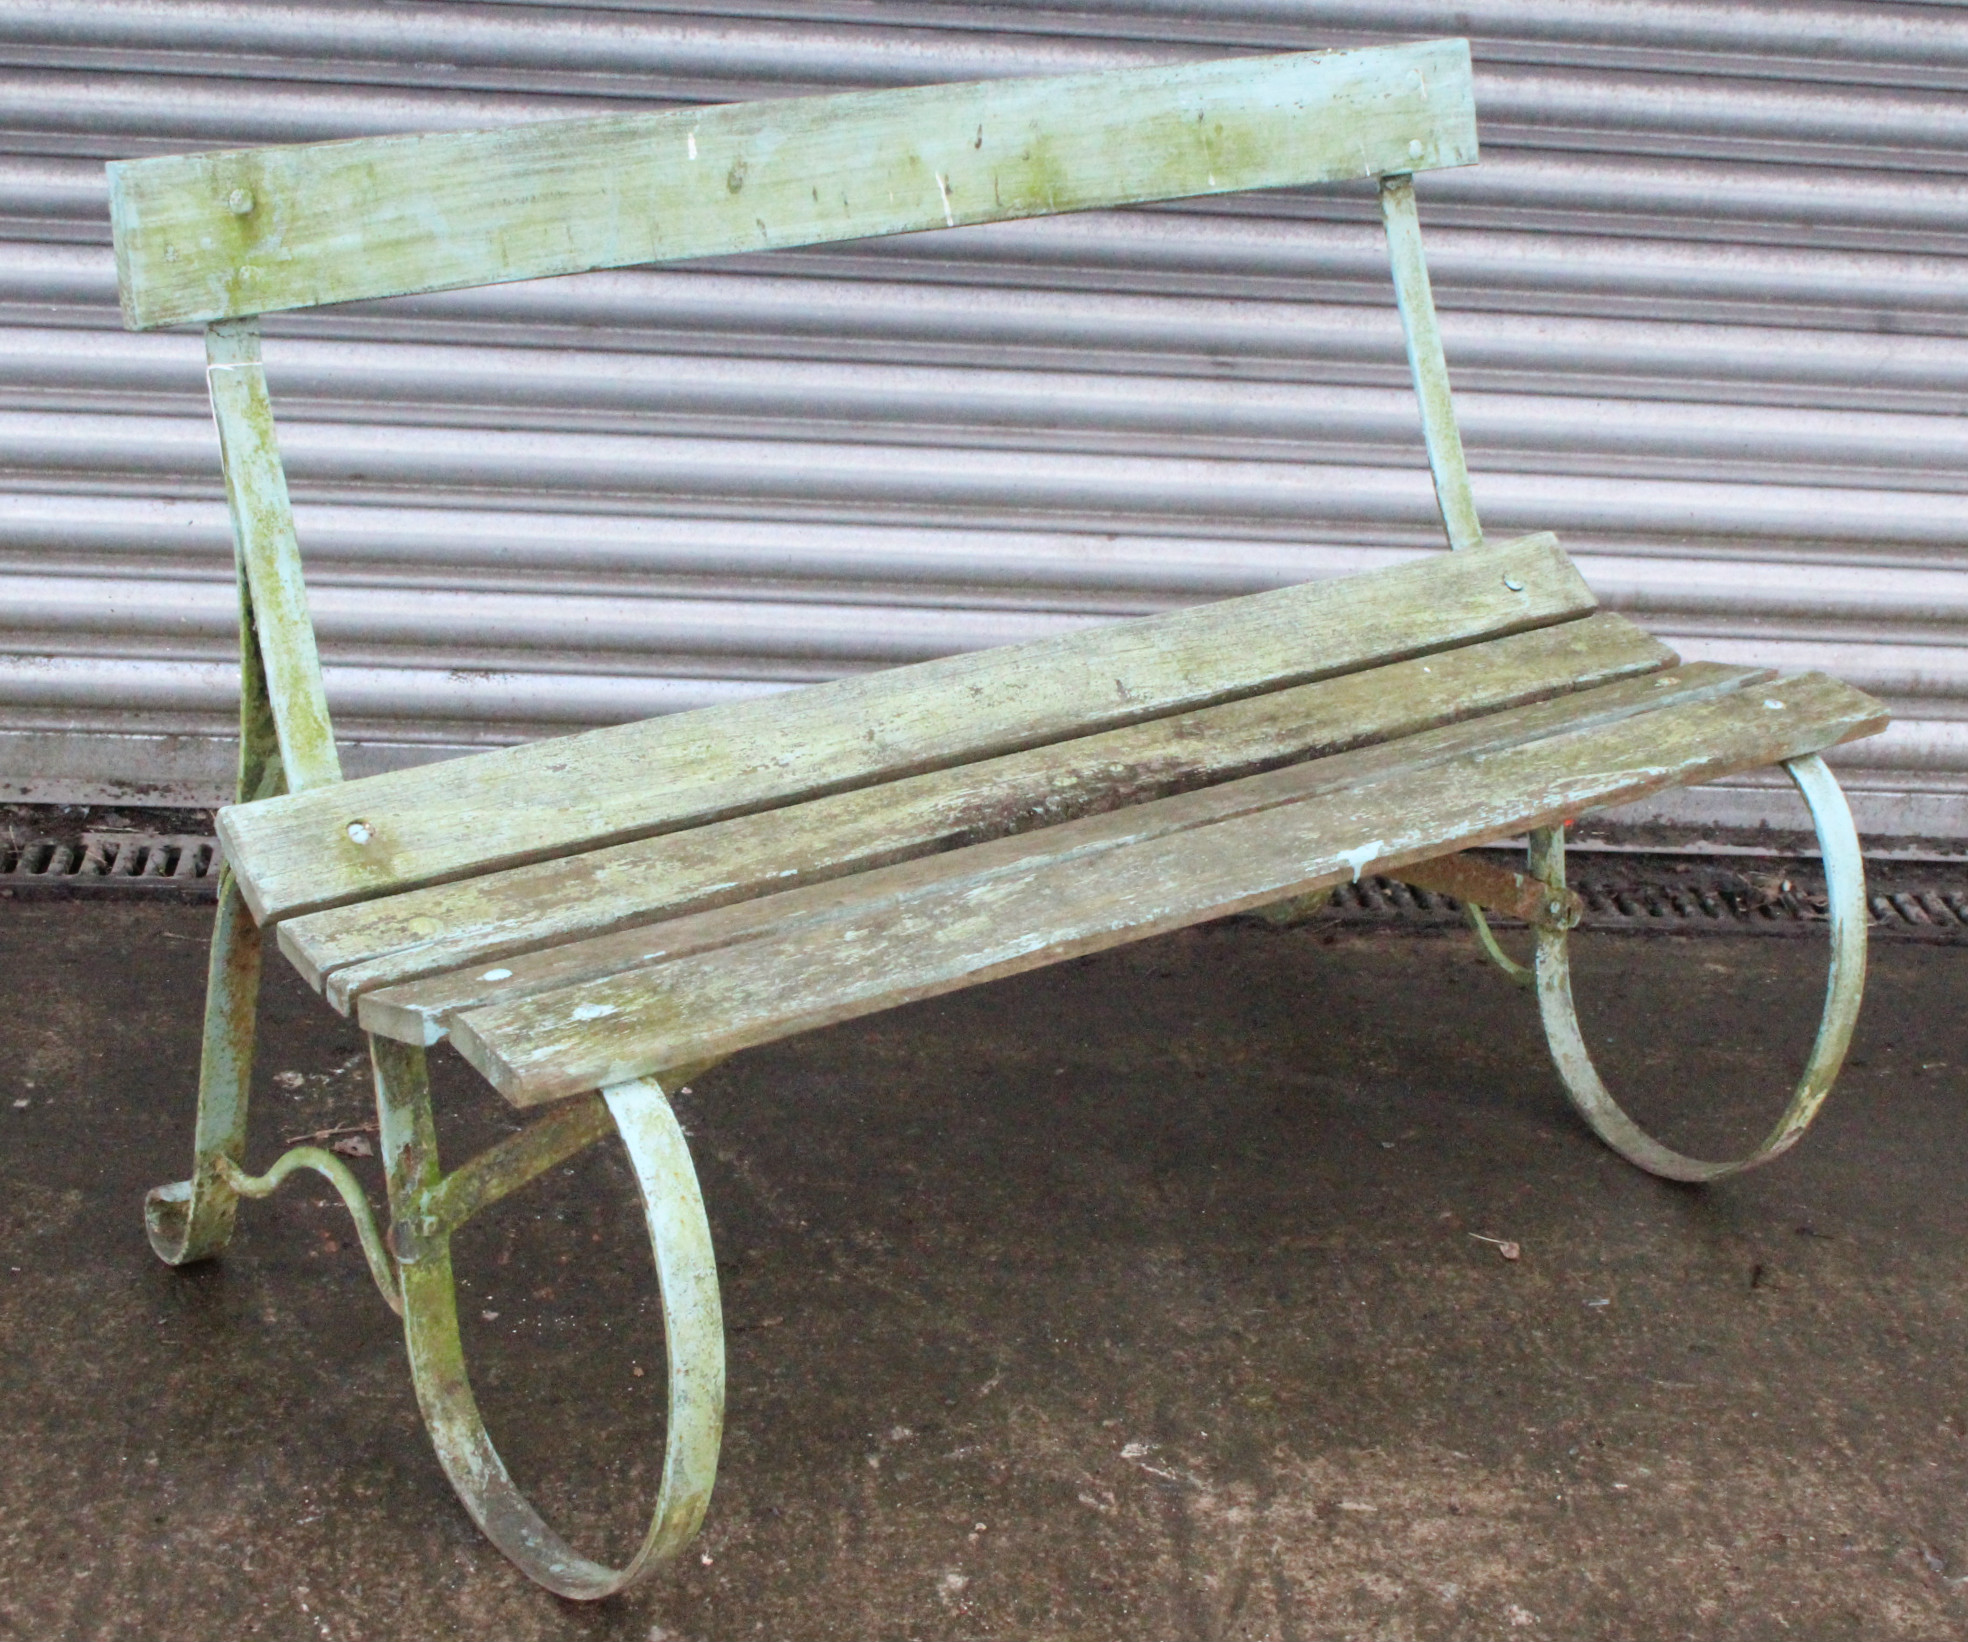 Lot 229 - A late 19th/early 20th century green painted teak & wrought-iron garden bench on scroll-shaped end